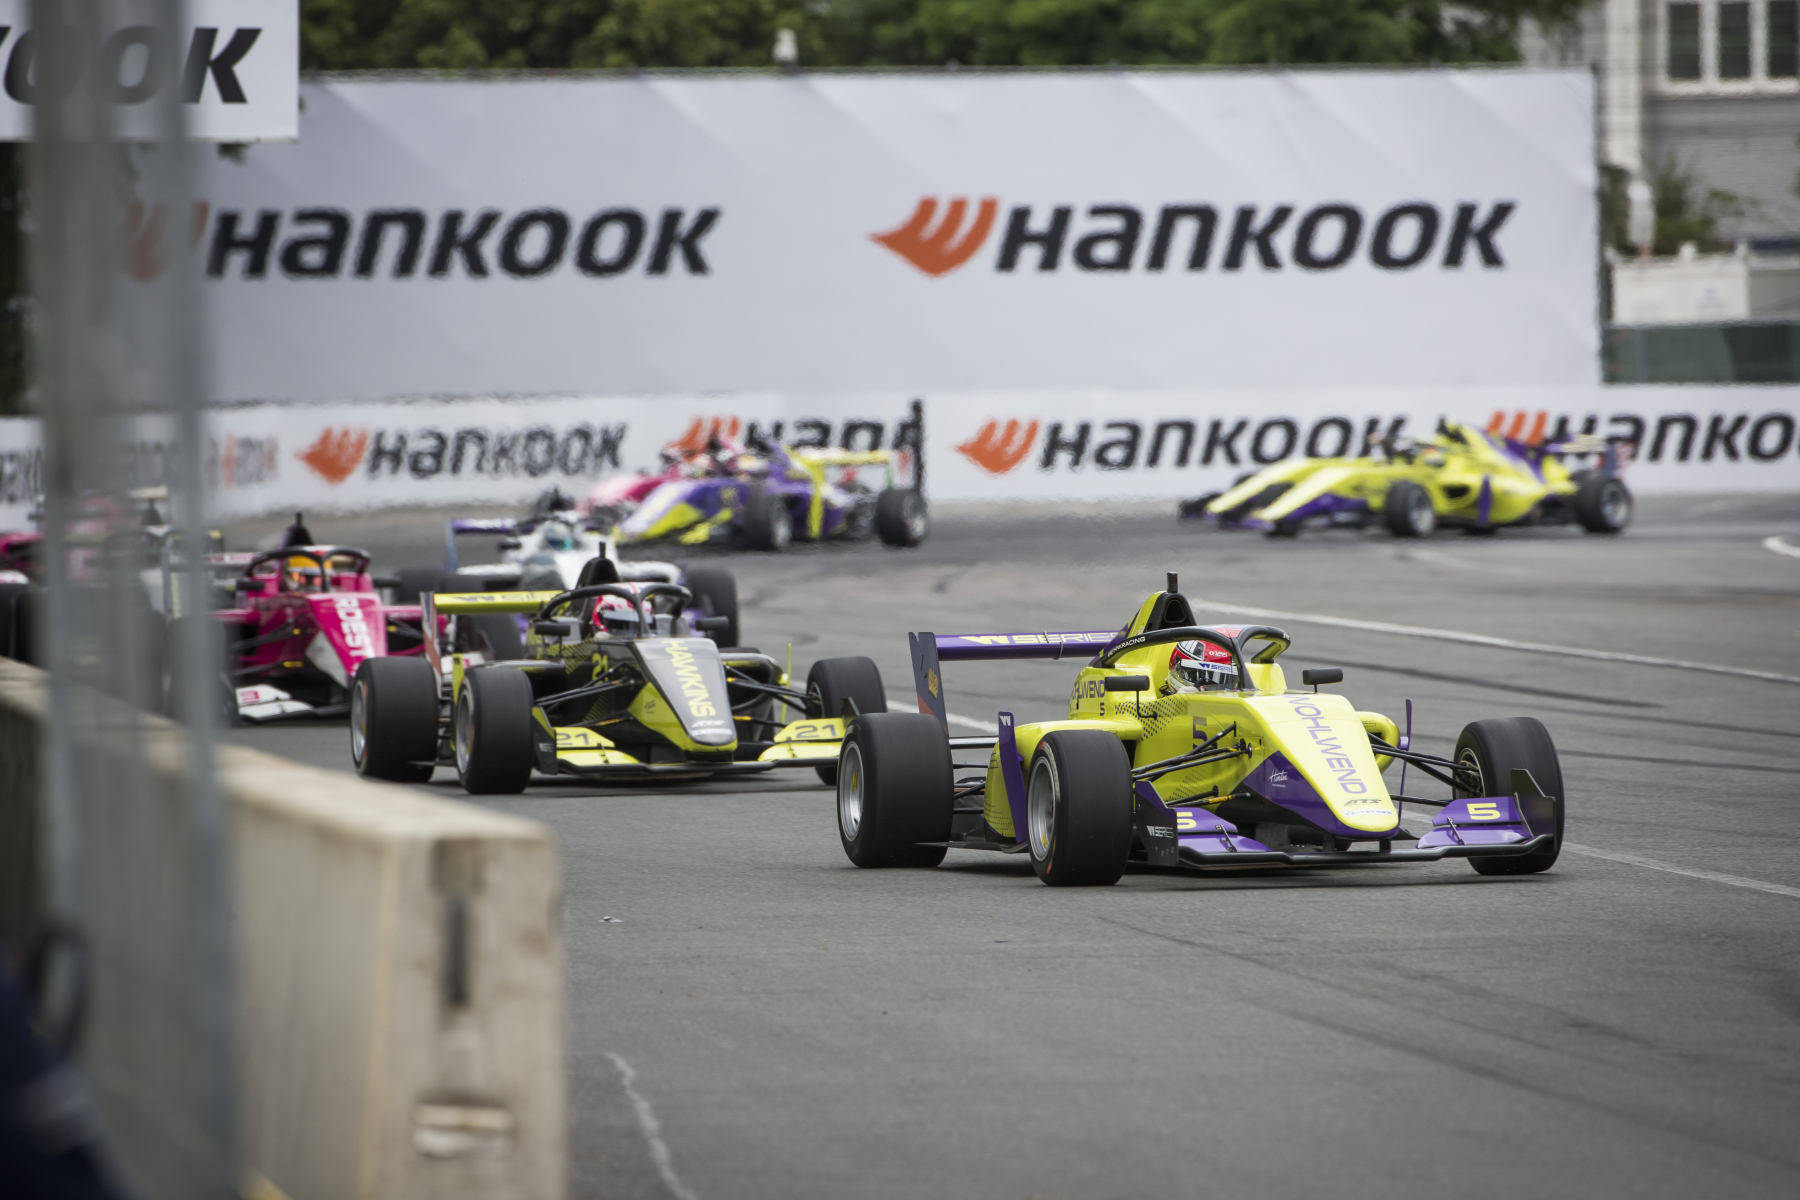 Hankook_W_Series_Formula_1_race_weekends_02.jpeg